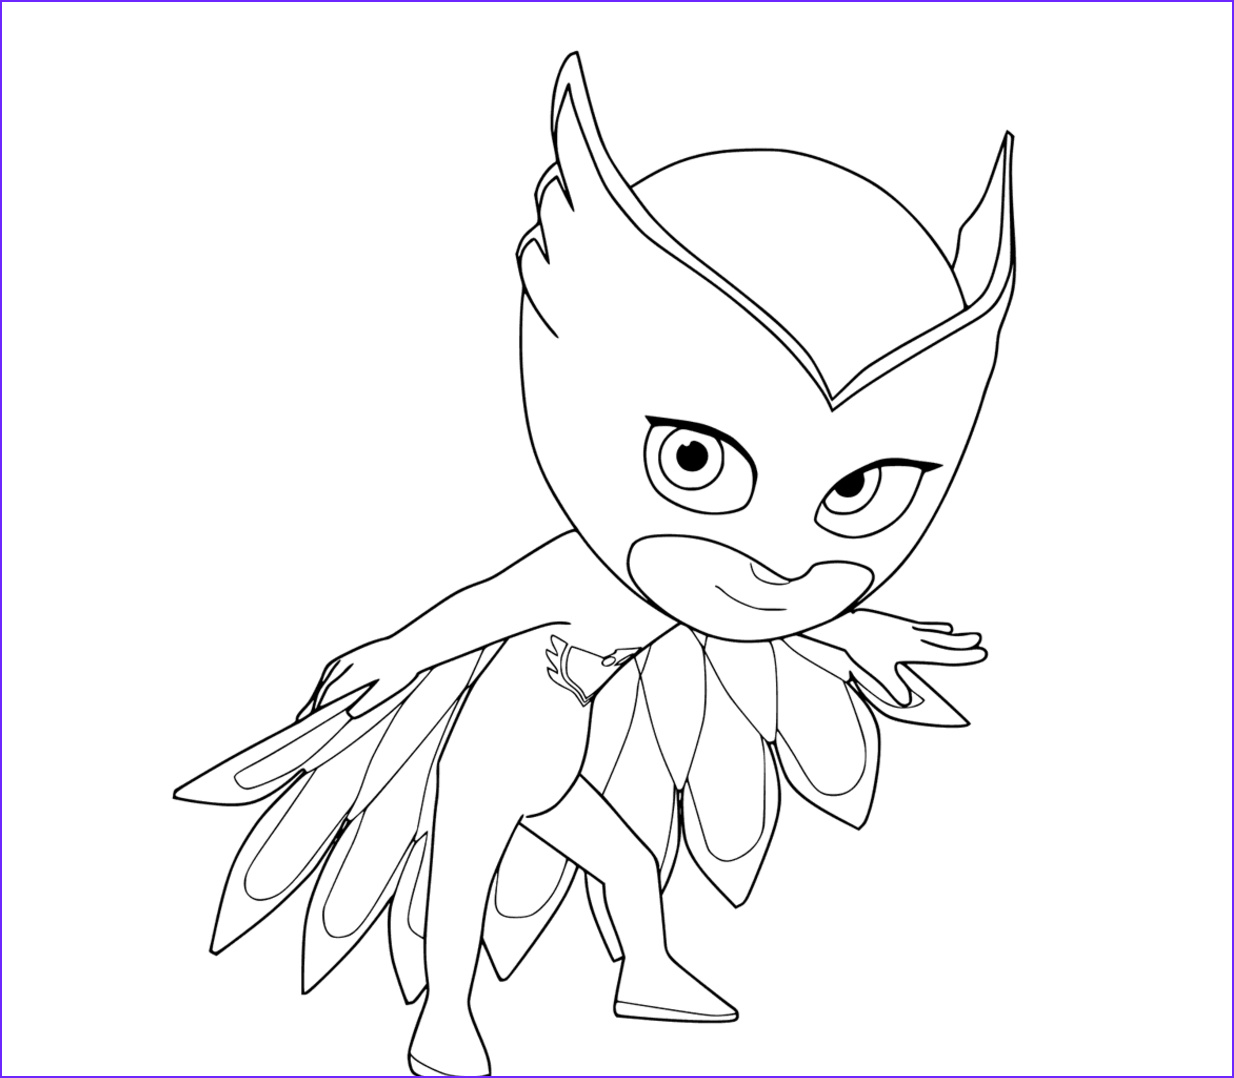 Pj Masks Coloring Luxury Gallery Pj Masks Coloring Pages to and Print for Free